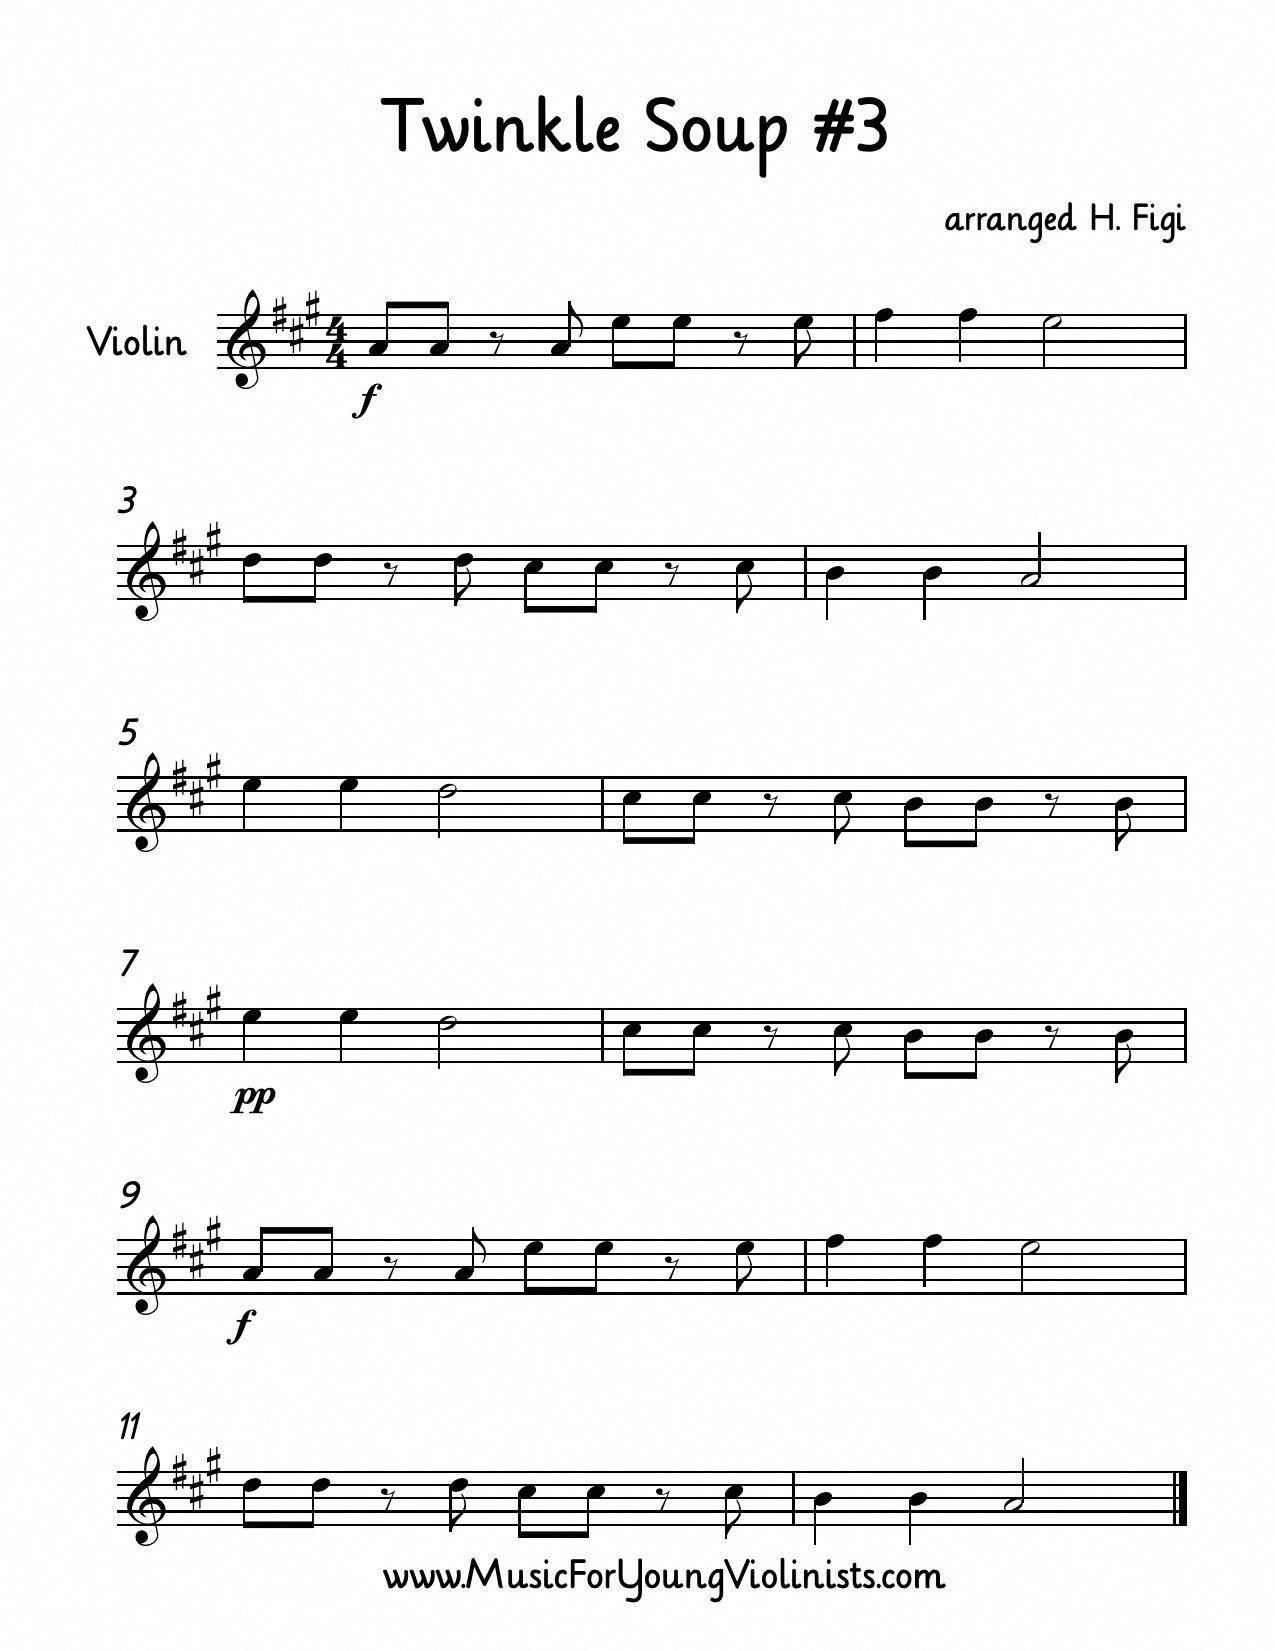 Suzuki Violin Twinkle Soup 3 Makes Great Sight Reading Material